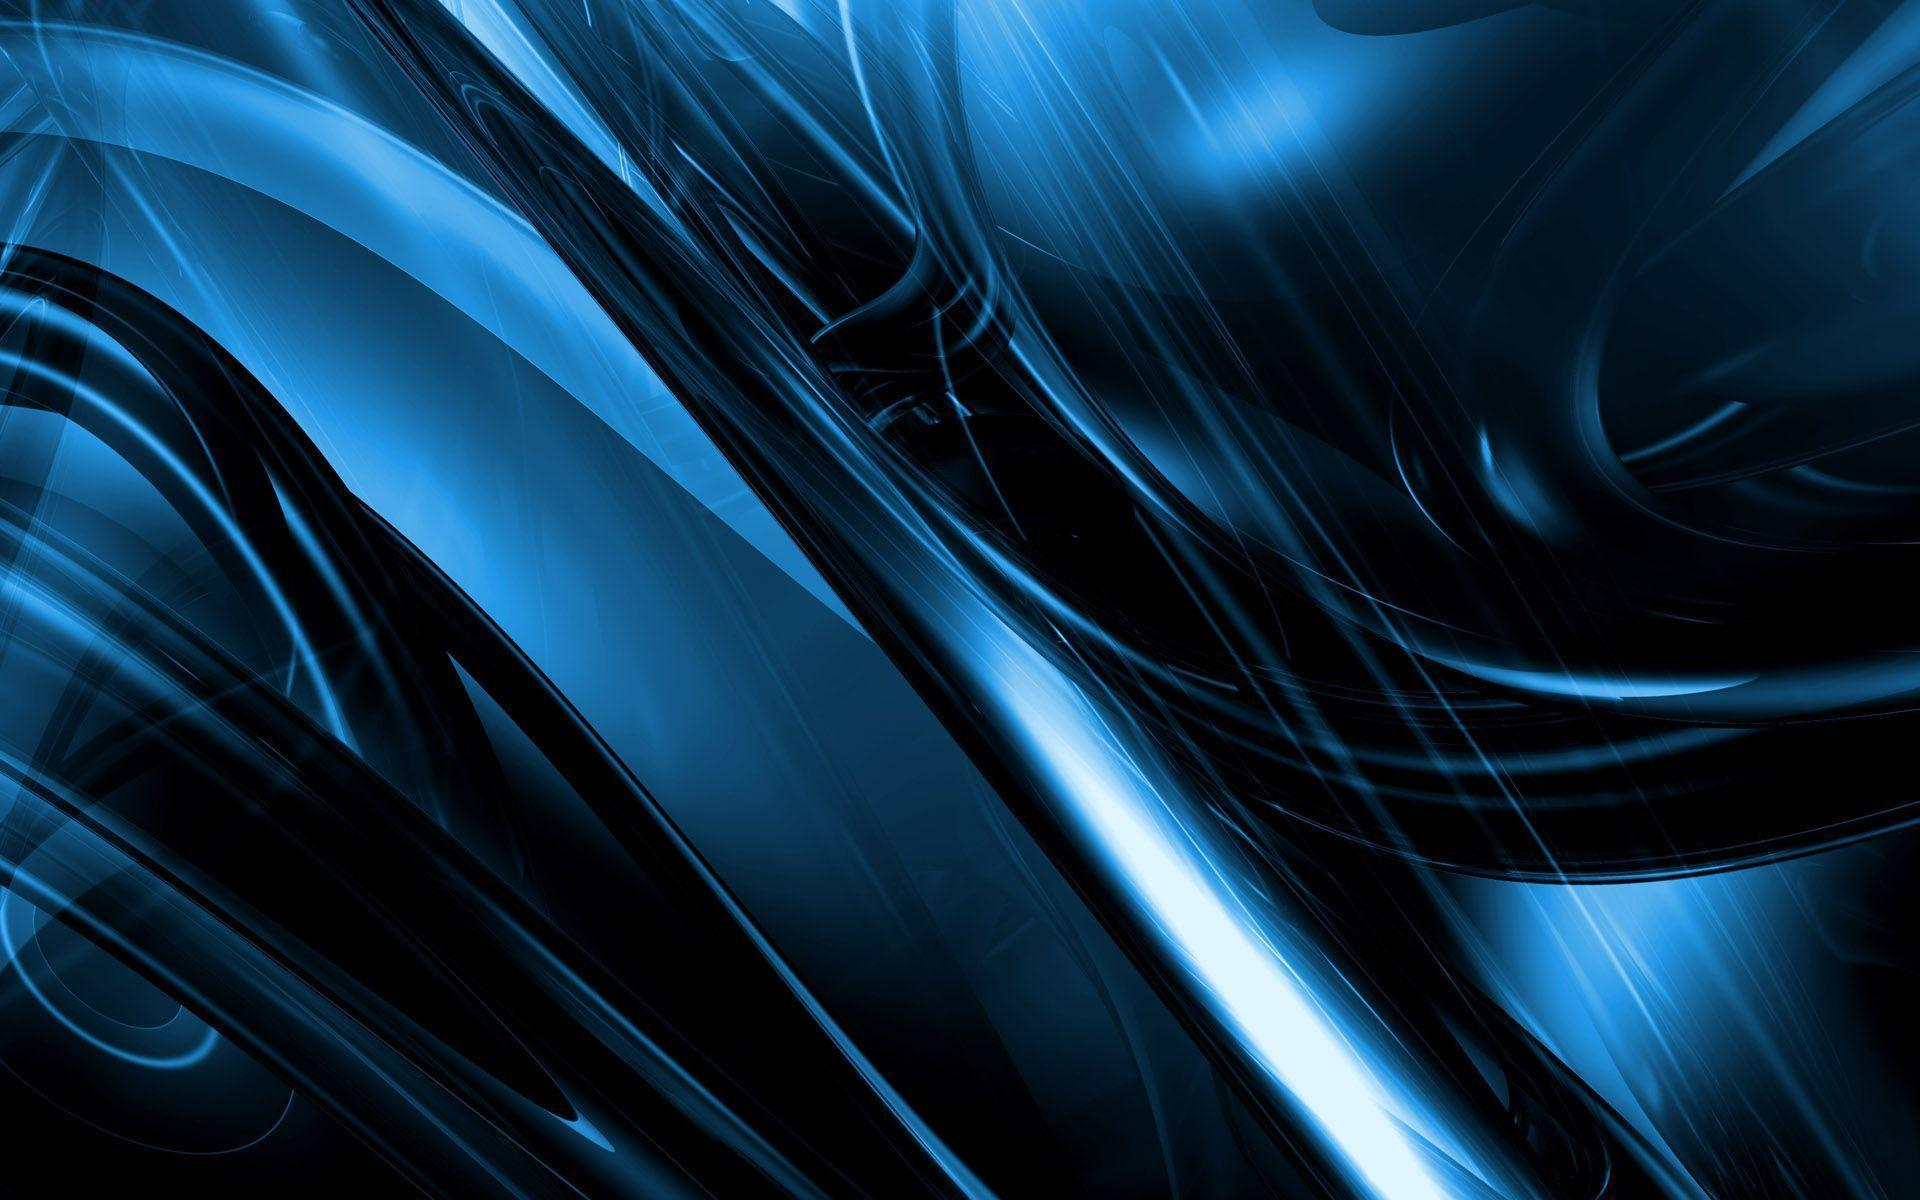 Wallpapers For > Abstract Blue Wallpapers